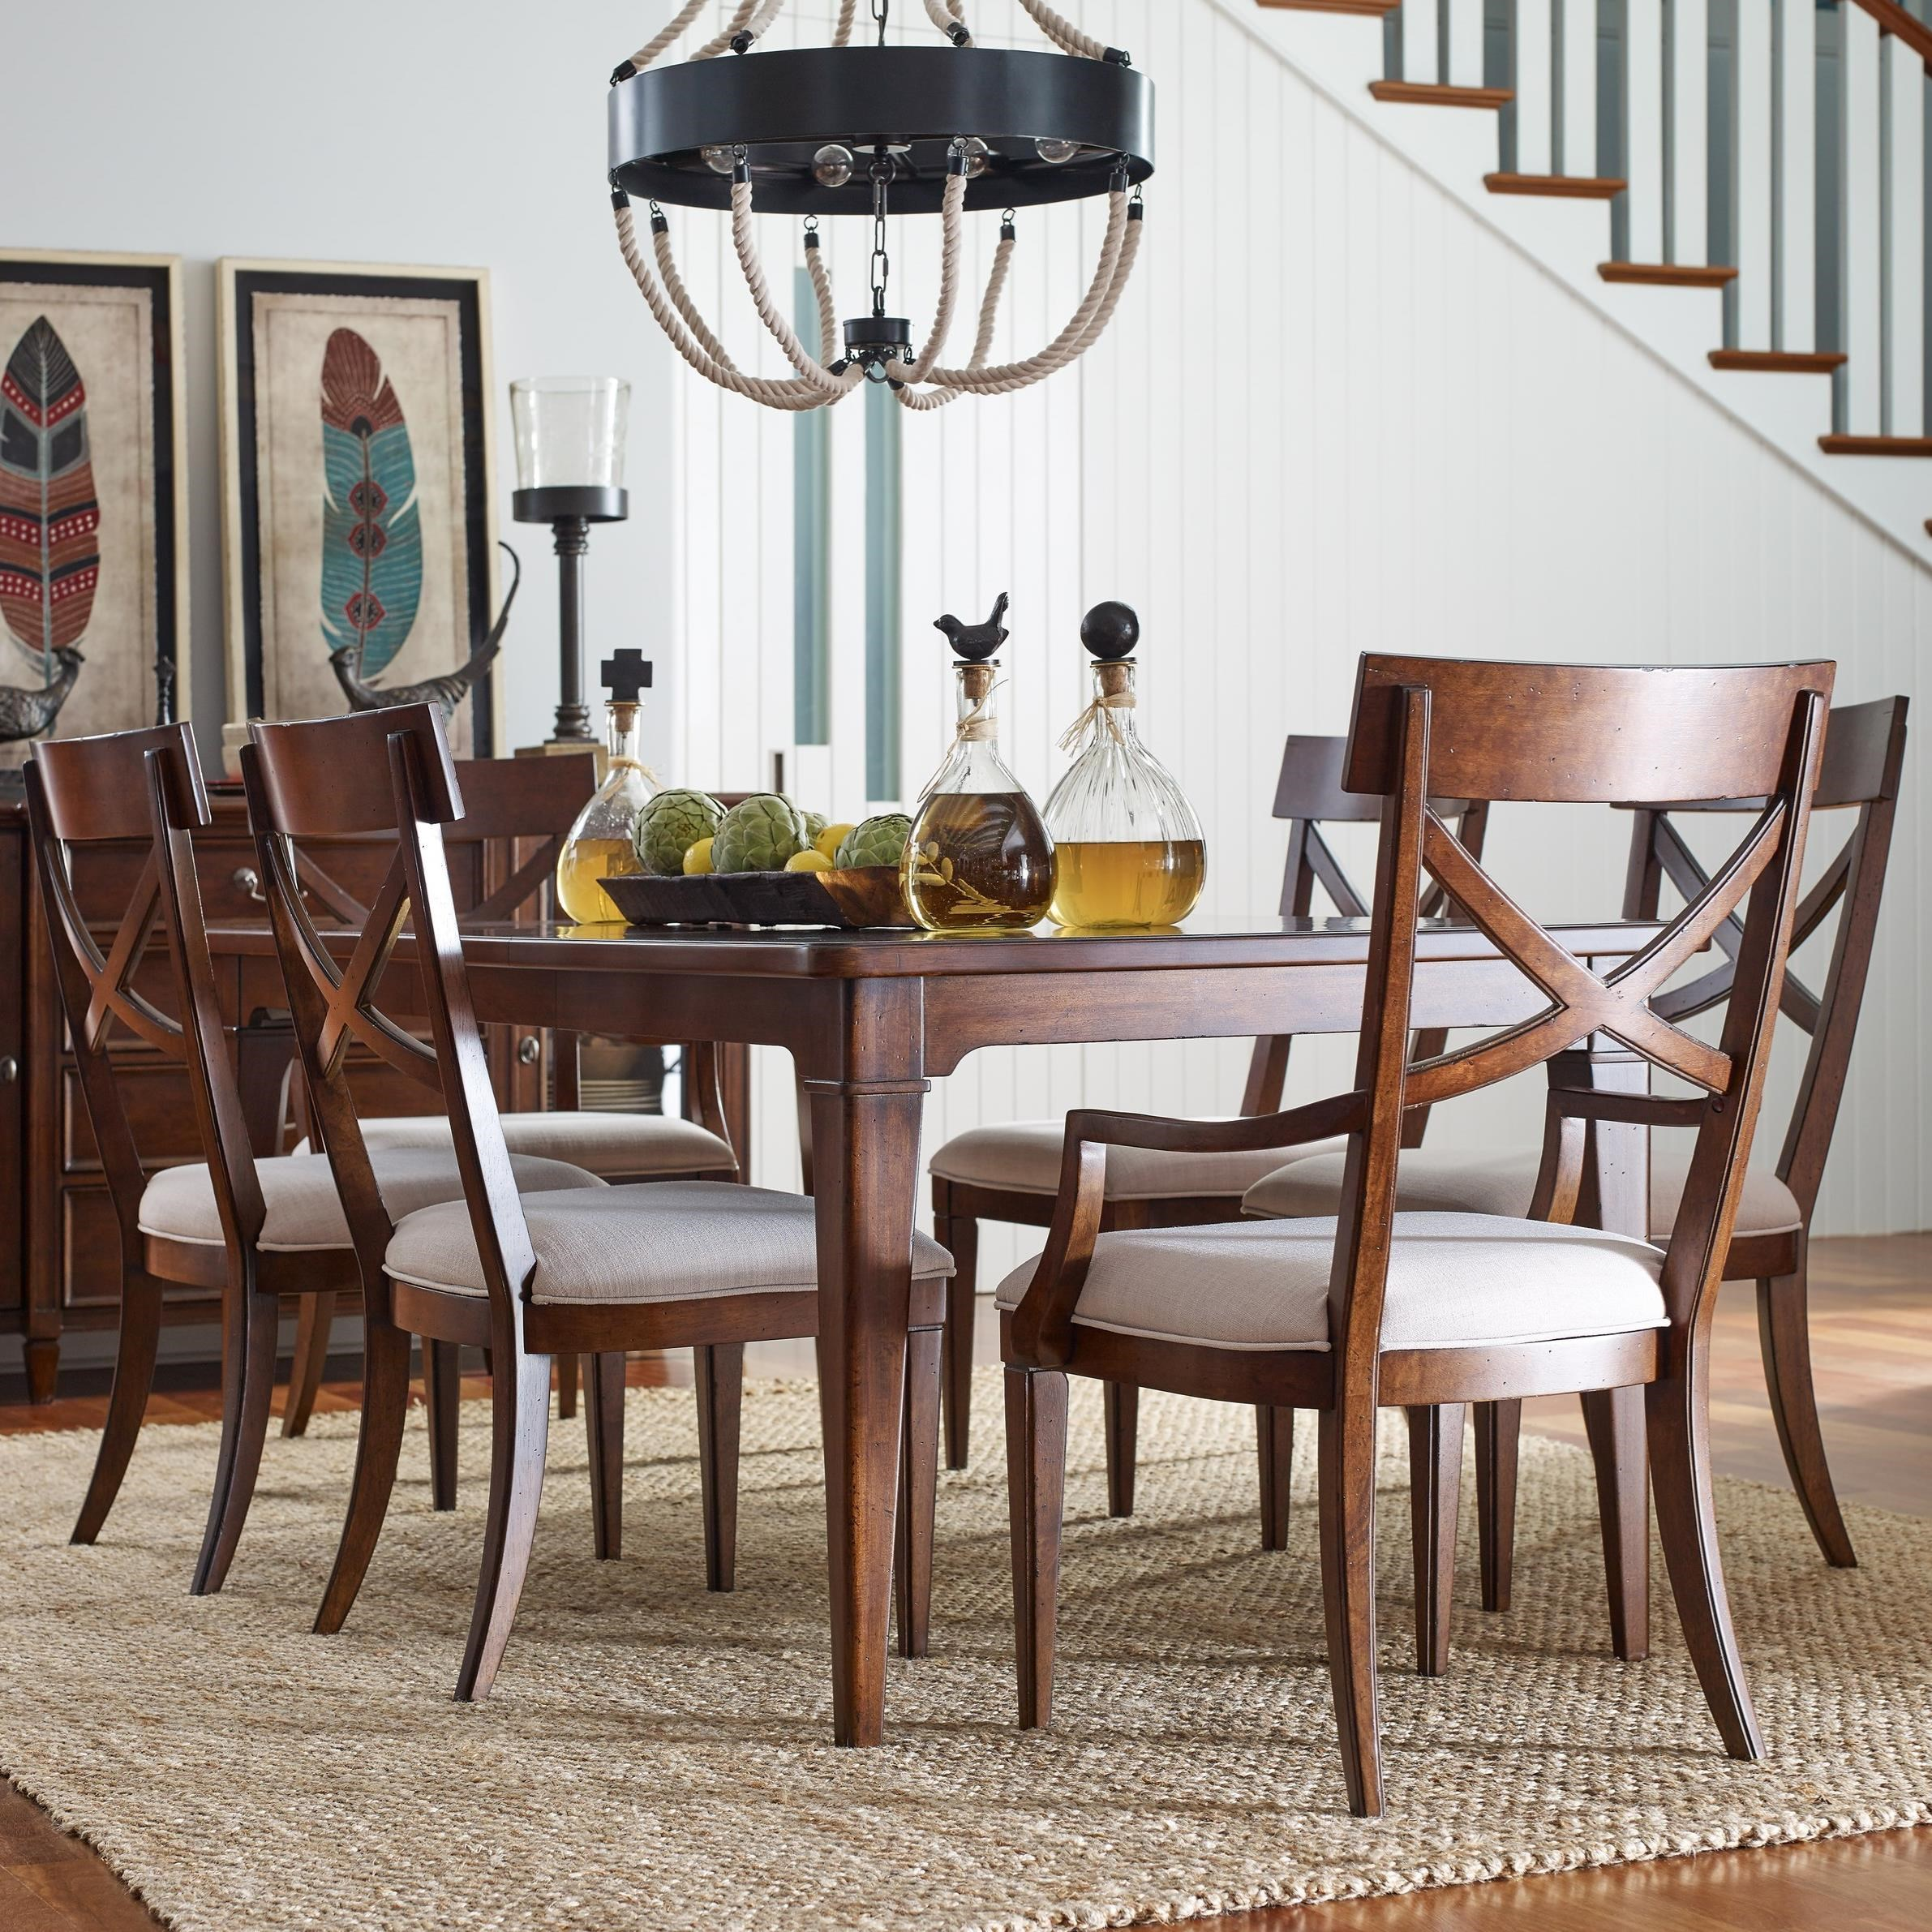 Dining room 7 piece